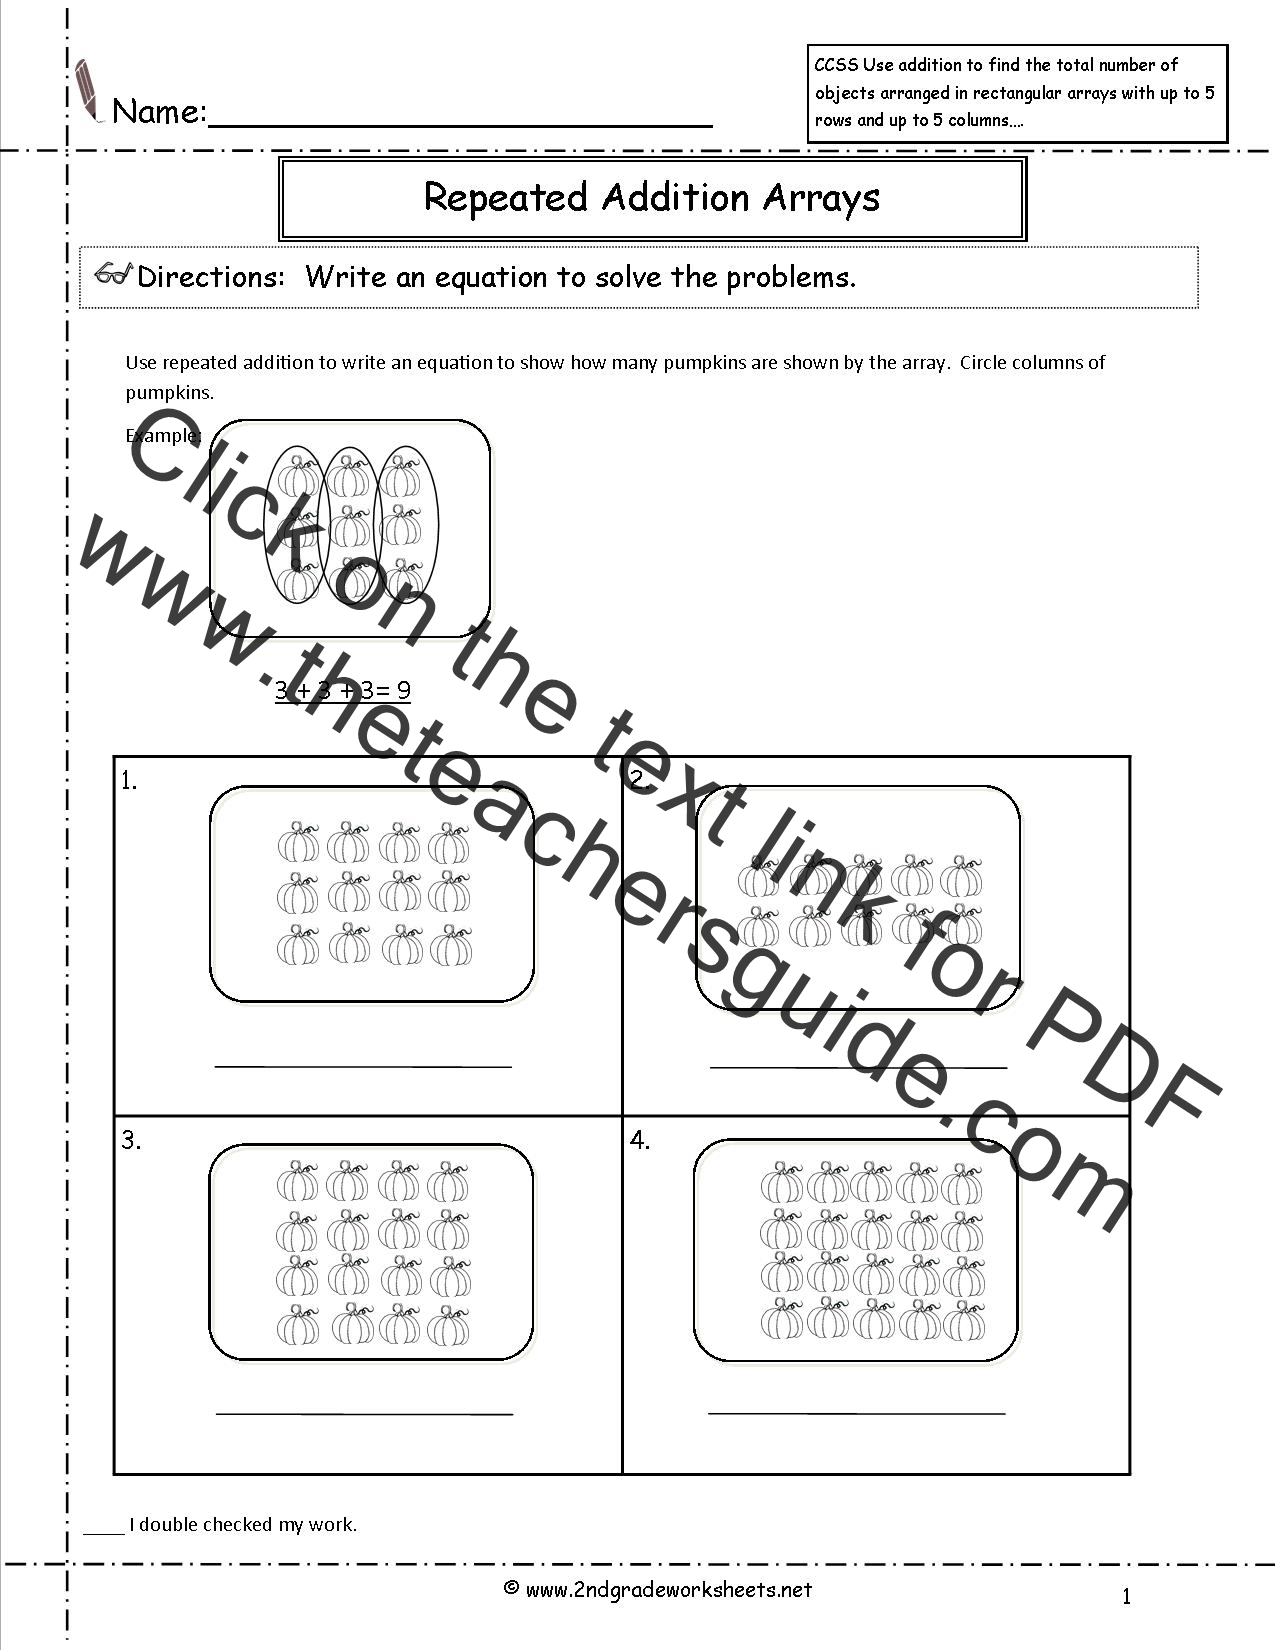 CCSS 2OA4 Worksheets – Multiplication Repeated Addition Worksheets